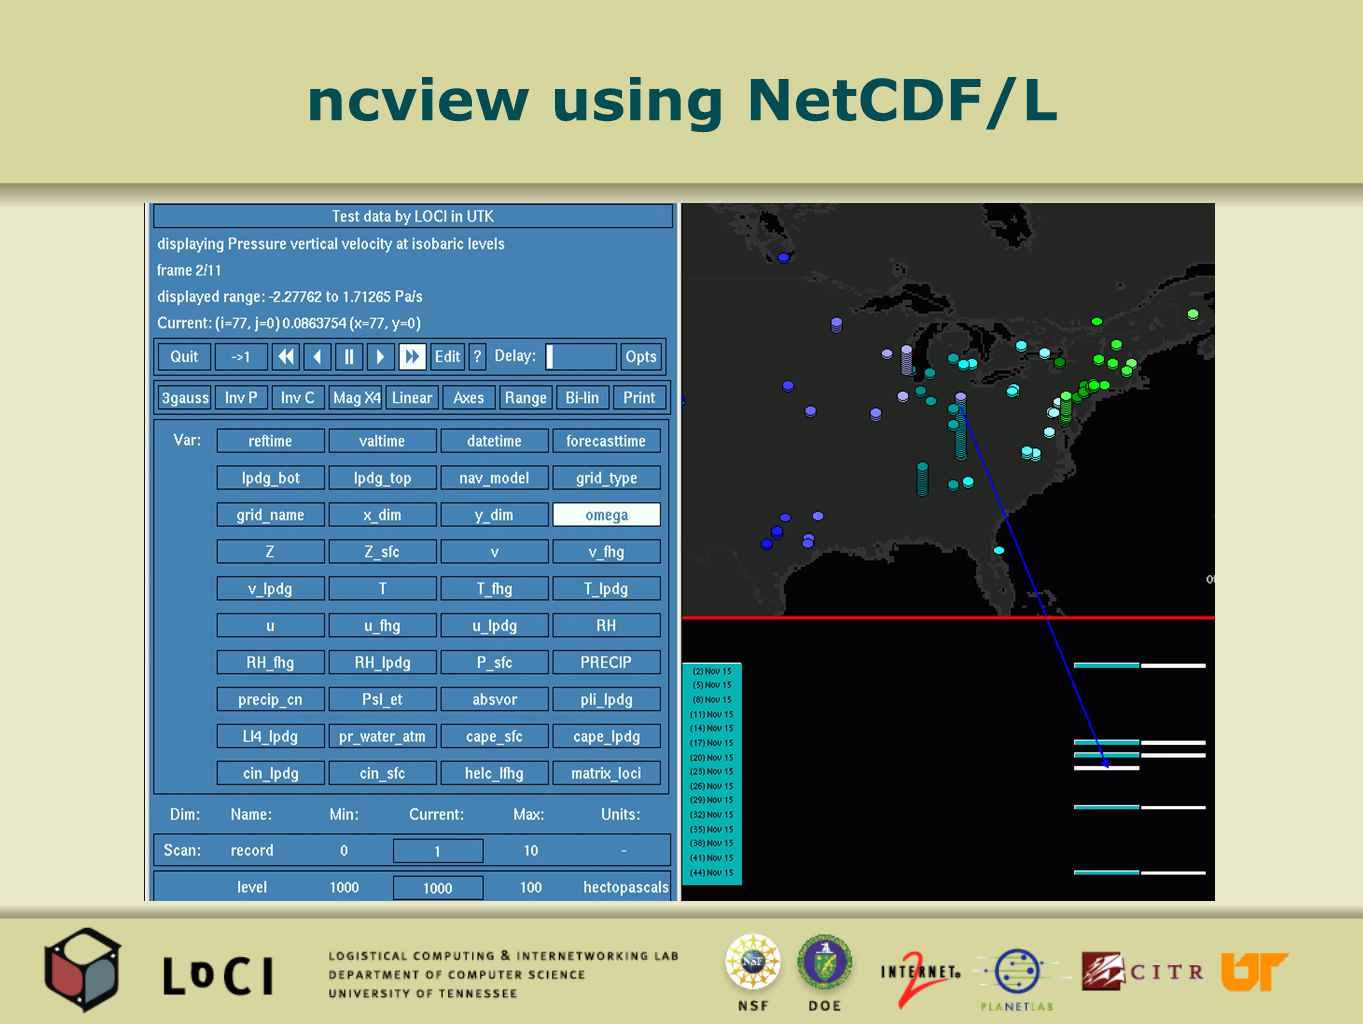 ncview using NetCDF/L